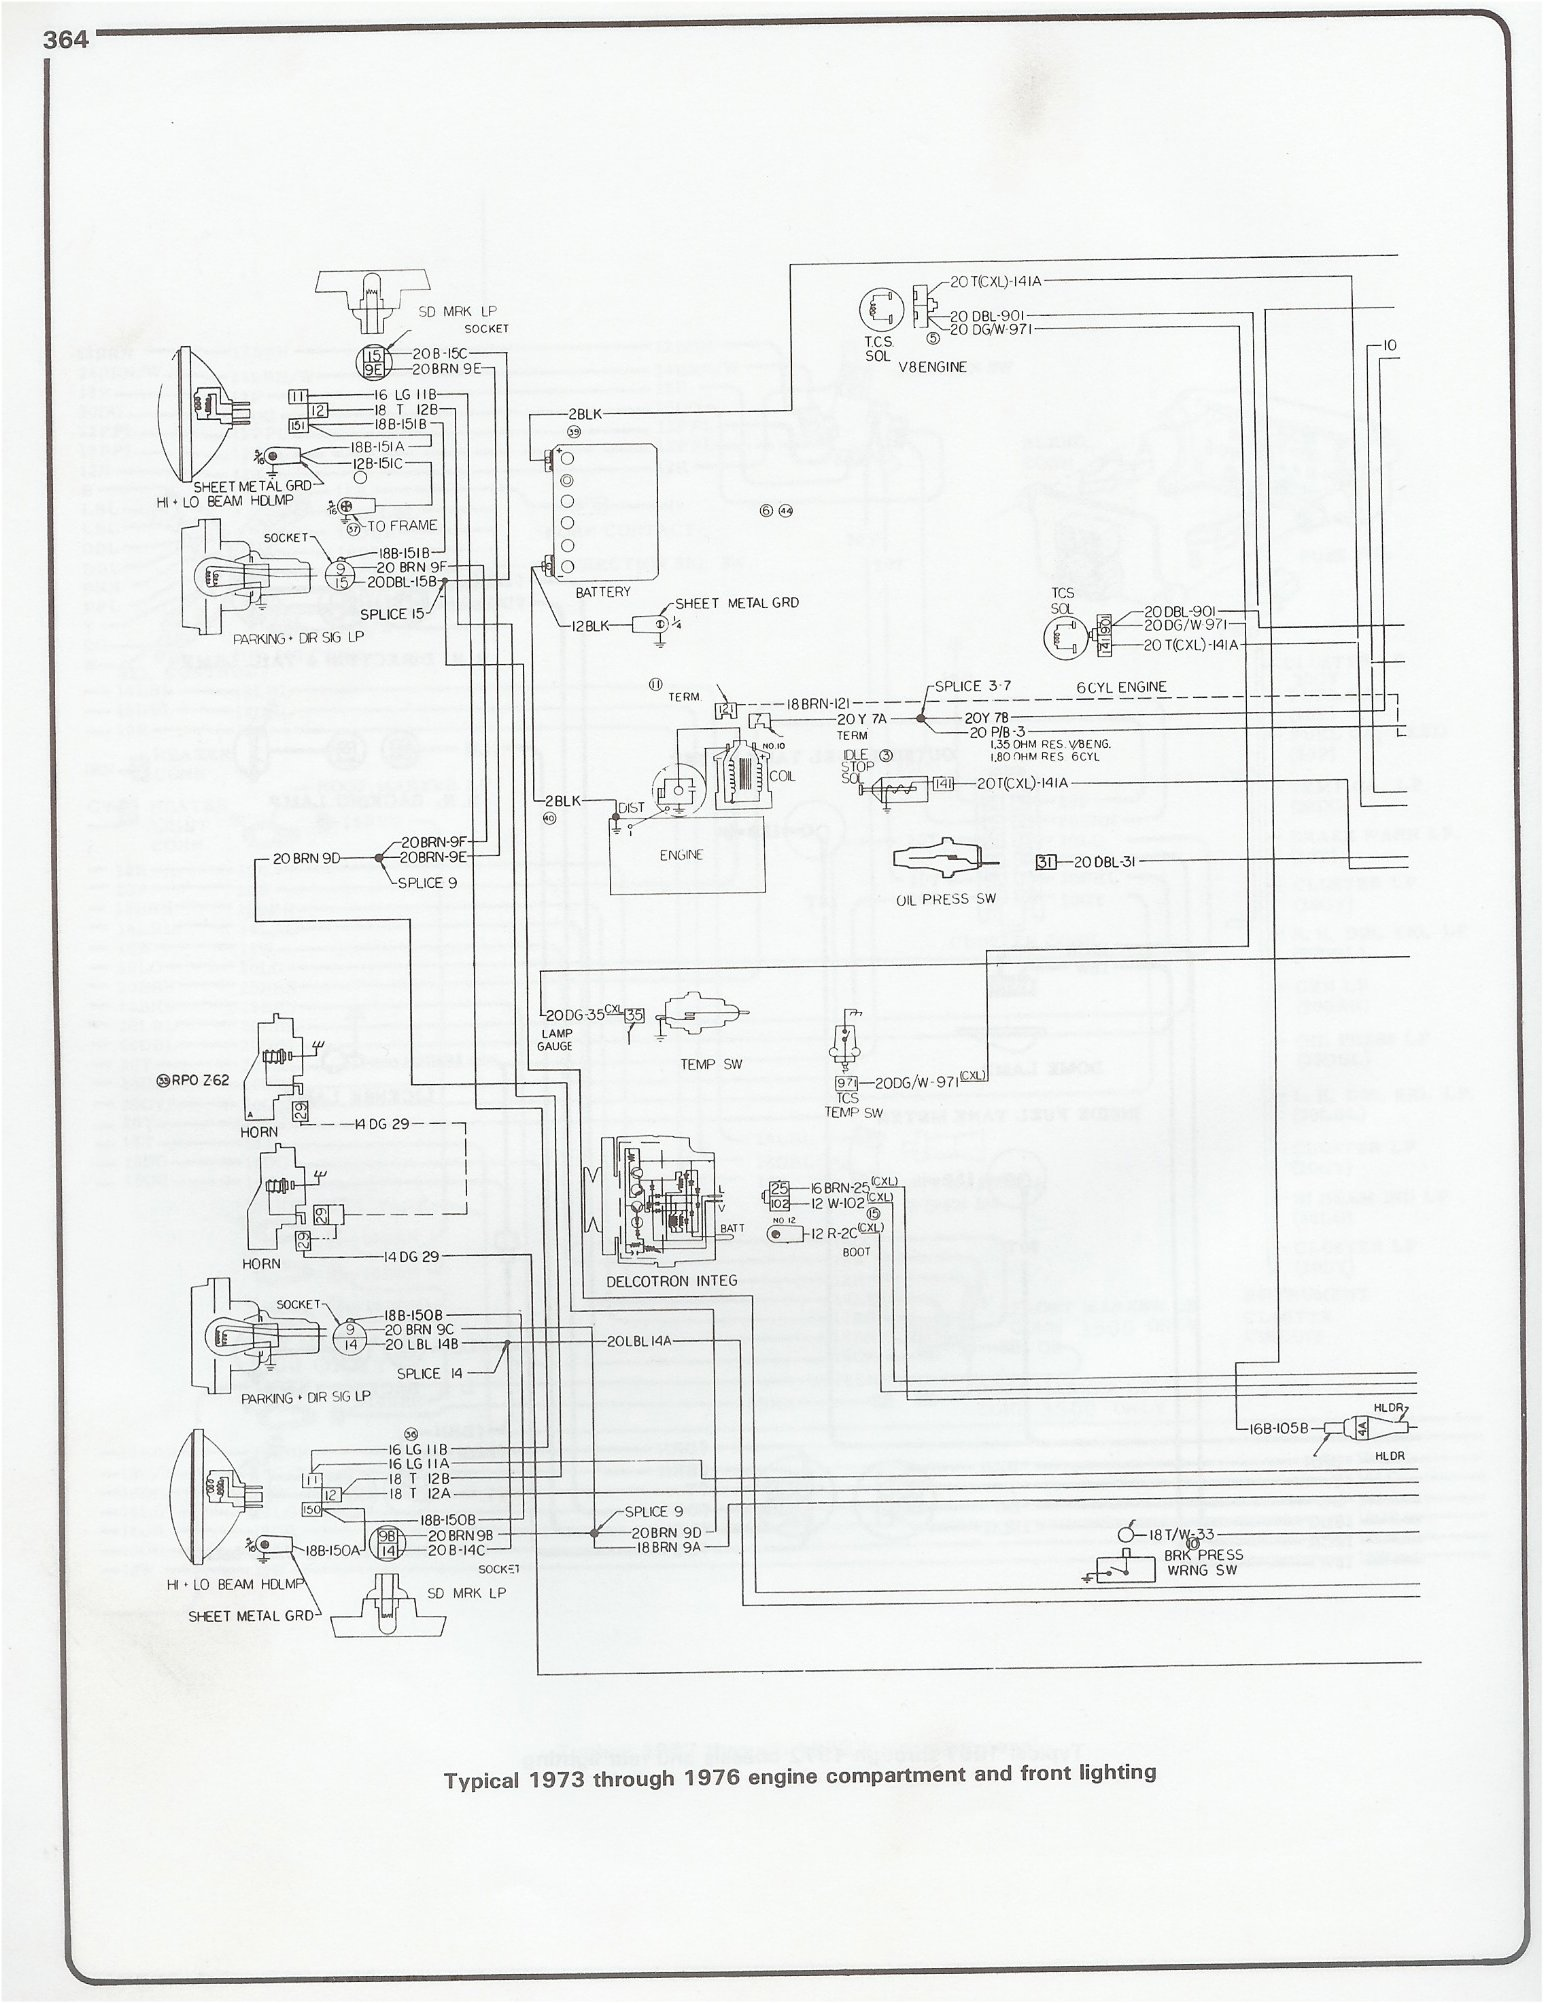 73 76_eng_frt_light 1976 chevy truck wiring diagram 1976 gmc wiring diagram \u2022 wiring 1981 K20 Step Side at panicattacktreatment.co